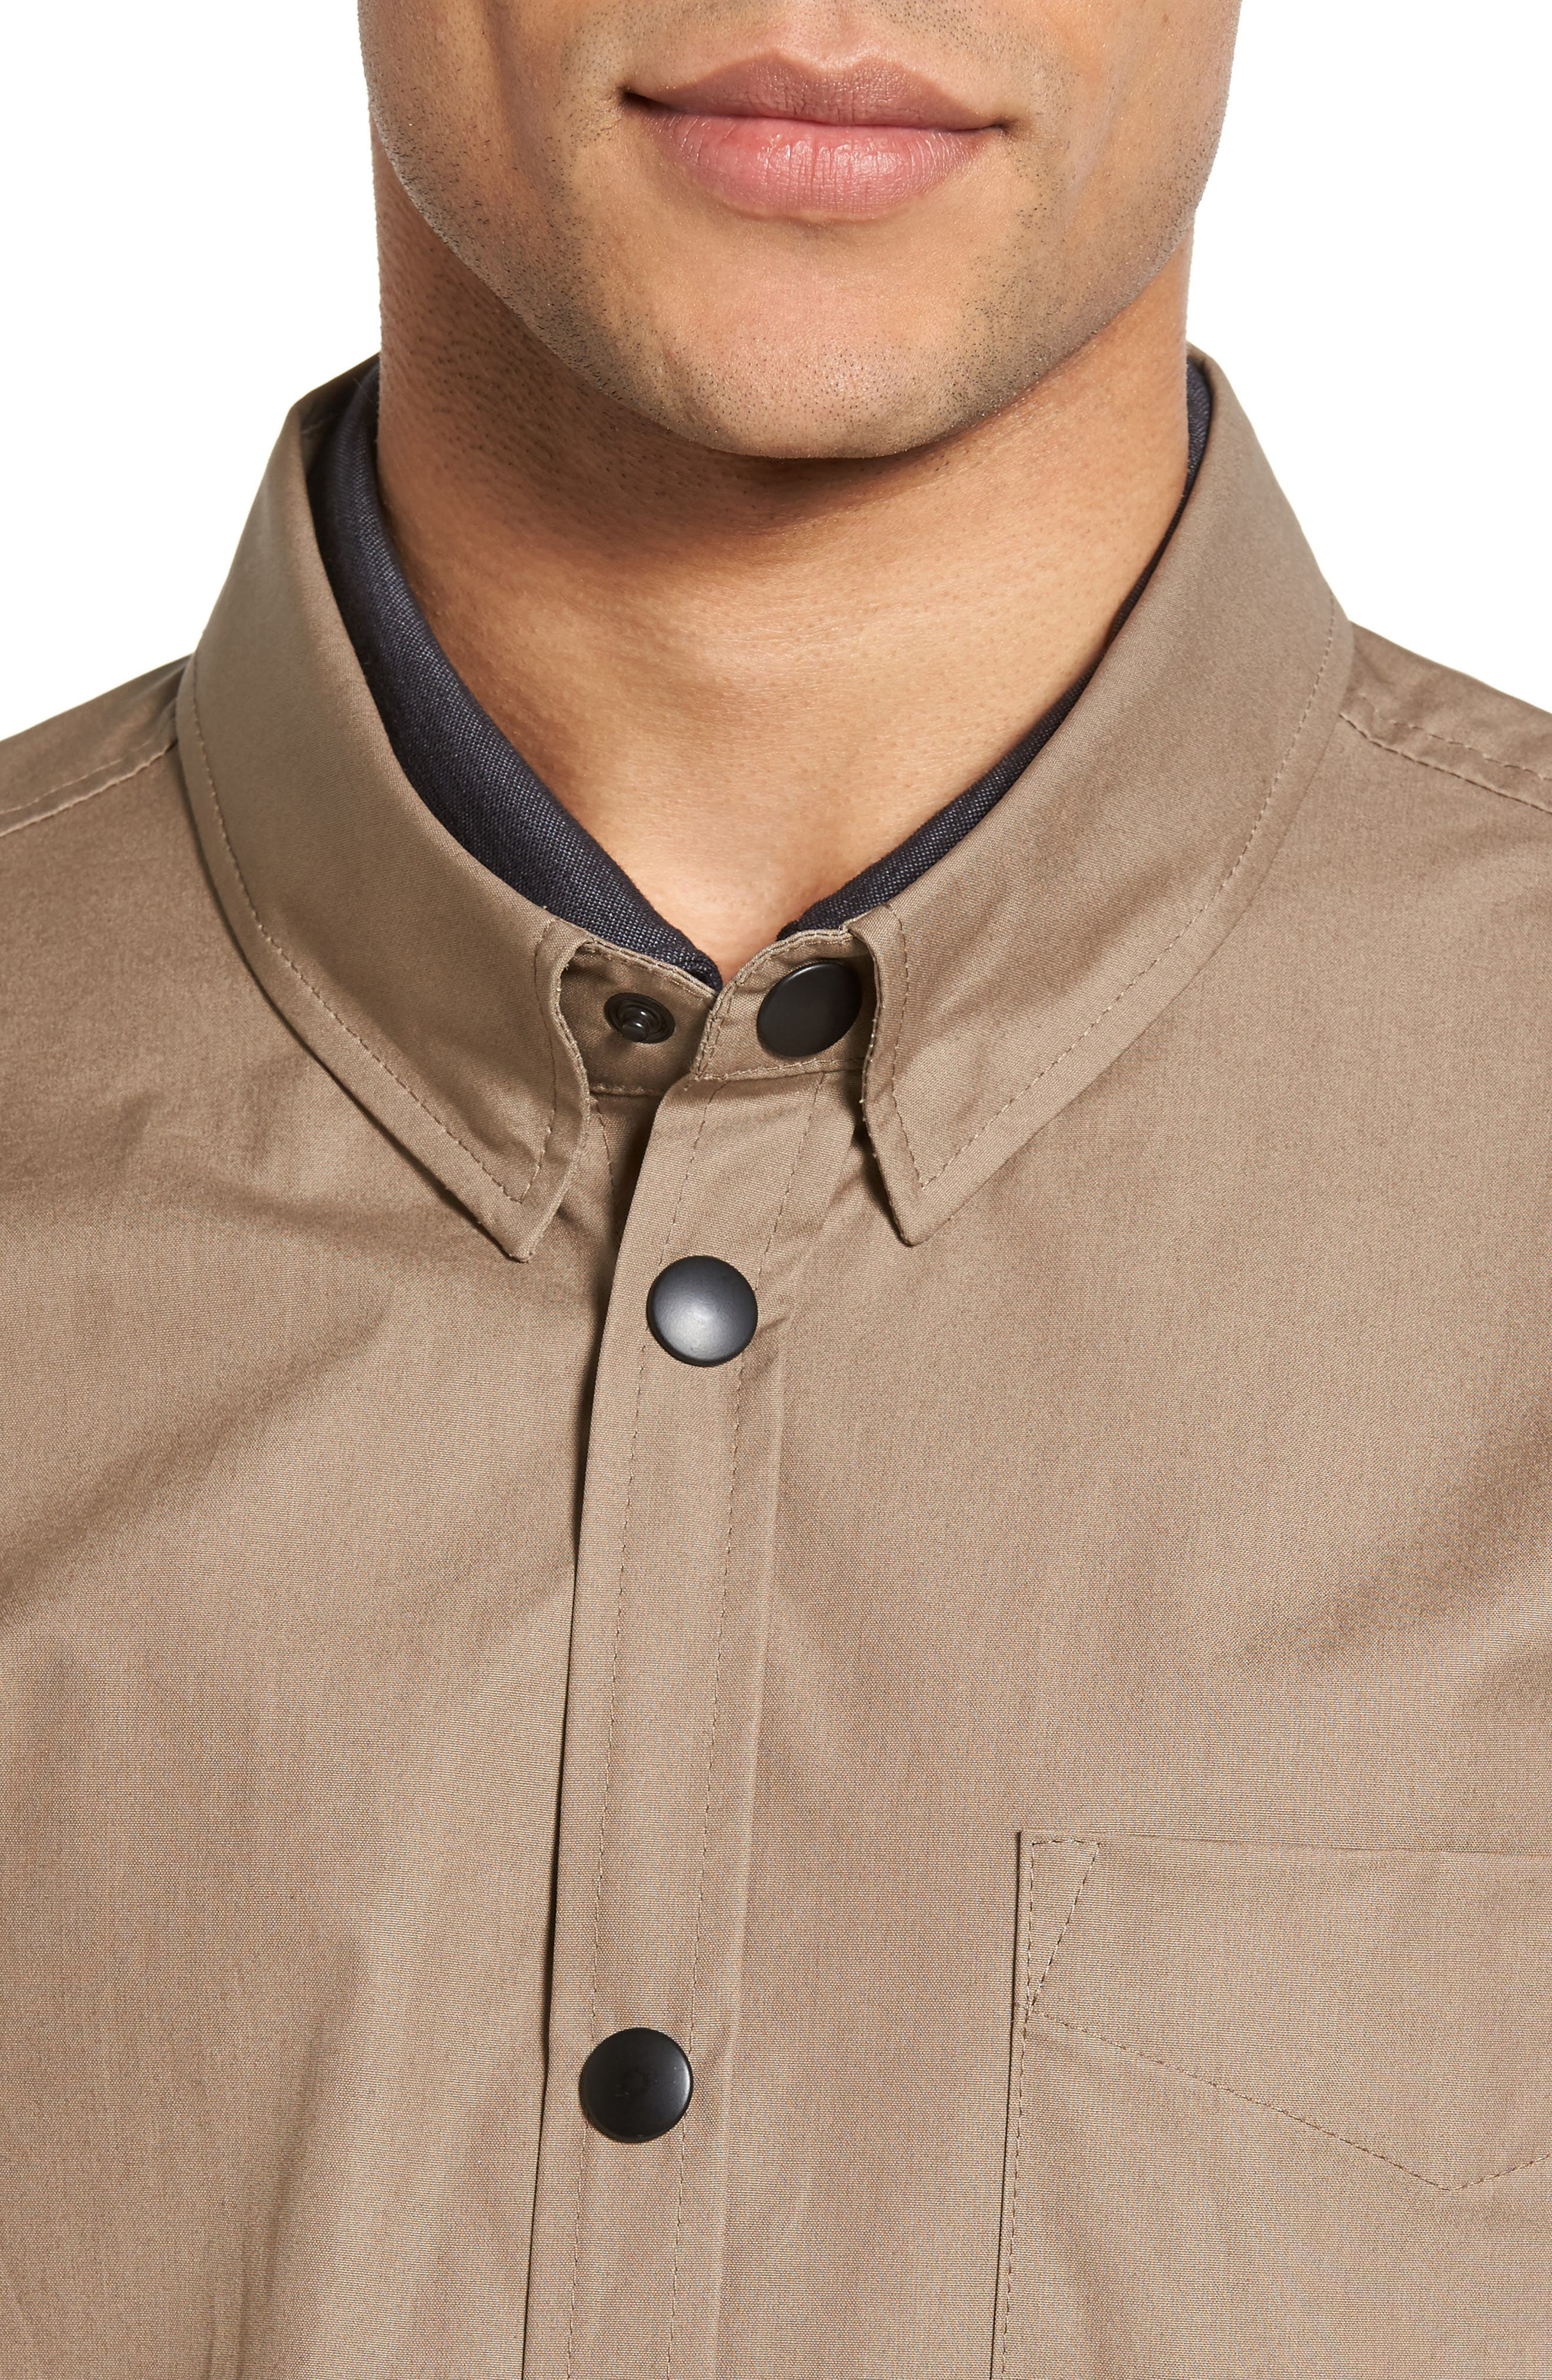 Lerum Relaxed Fit Shirt Jacket,                             Alternate thumbnail 6, color,